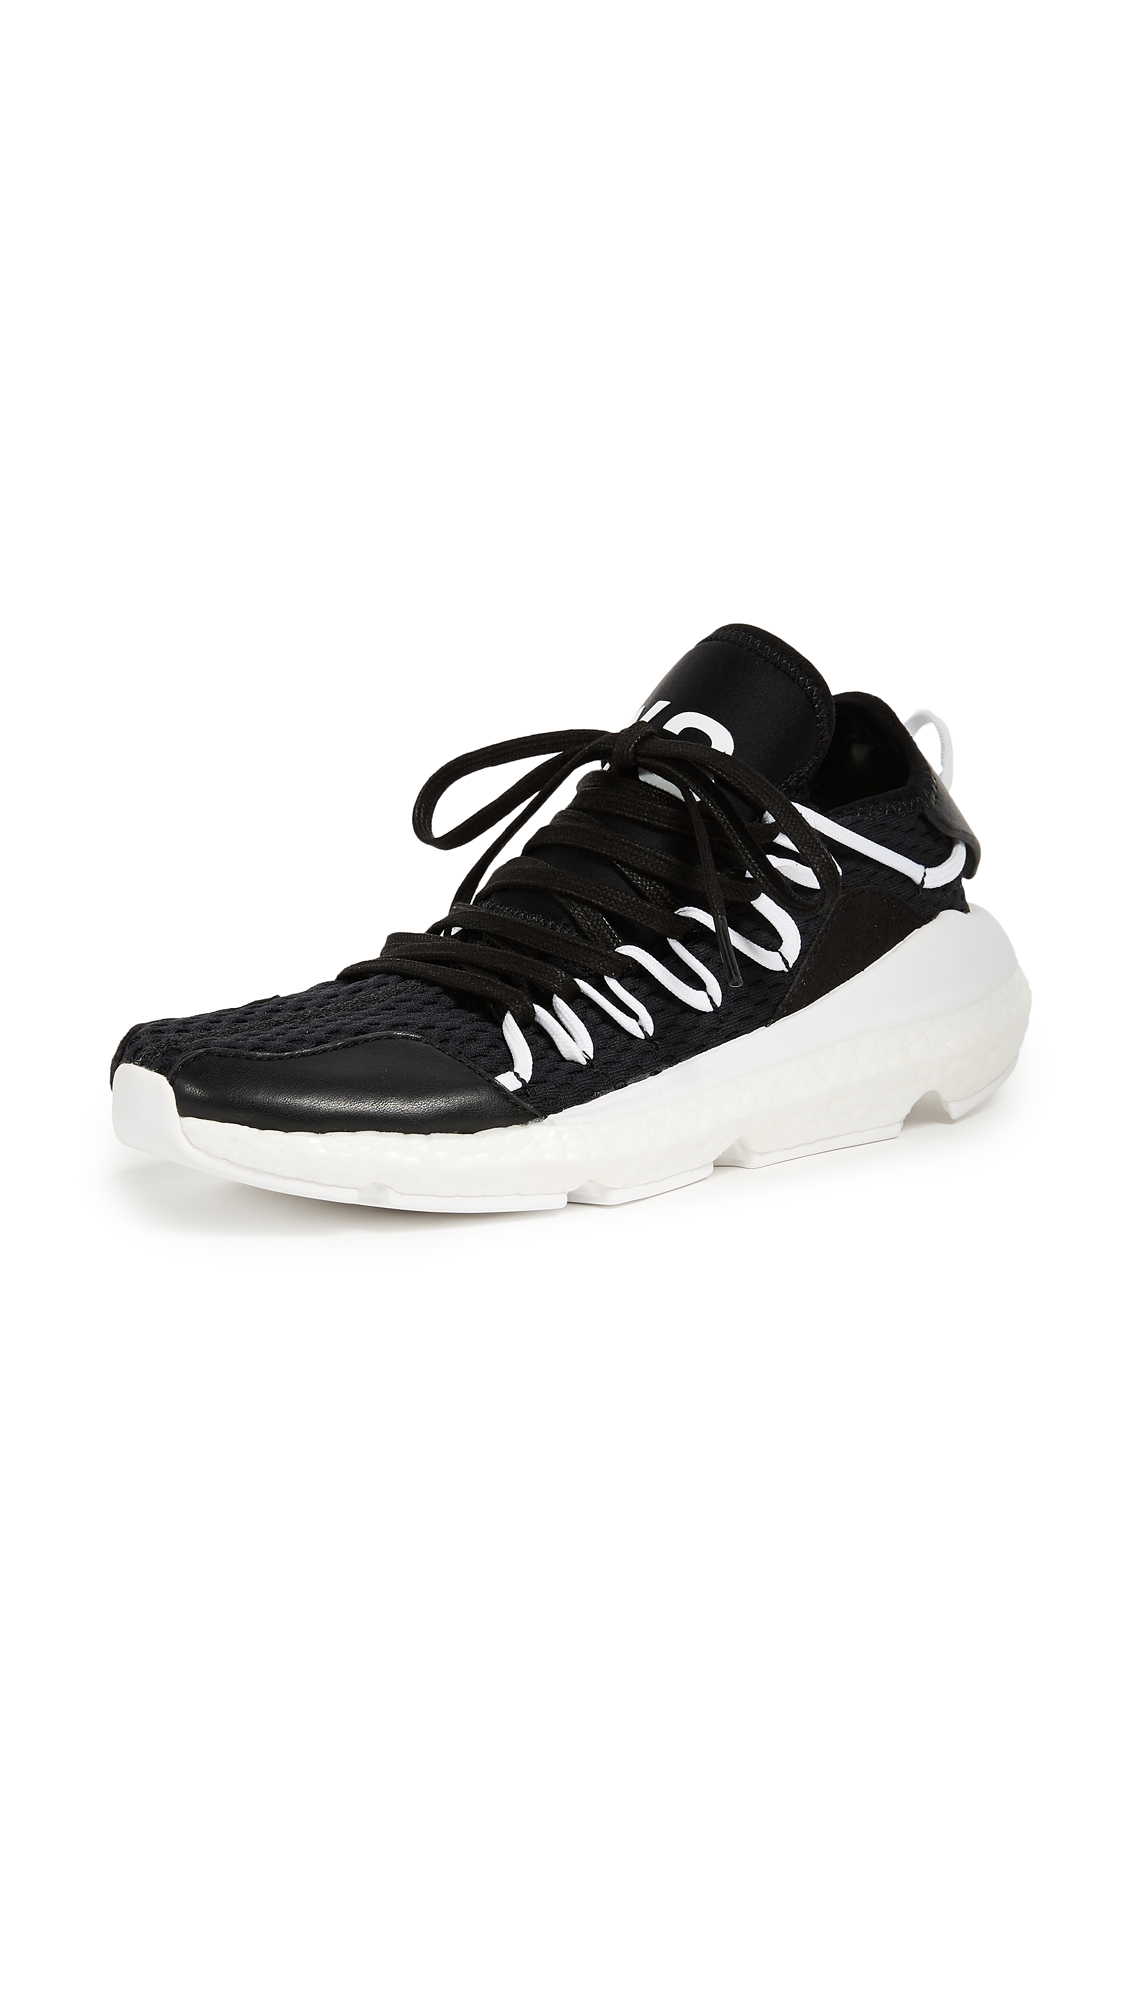 Y-3 Kusari Sneakers - Black/White/White